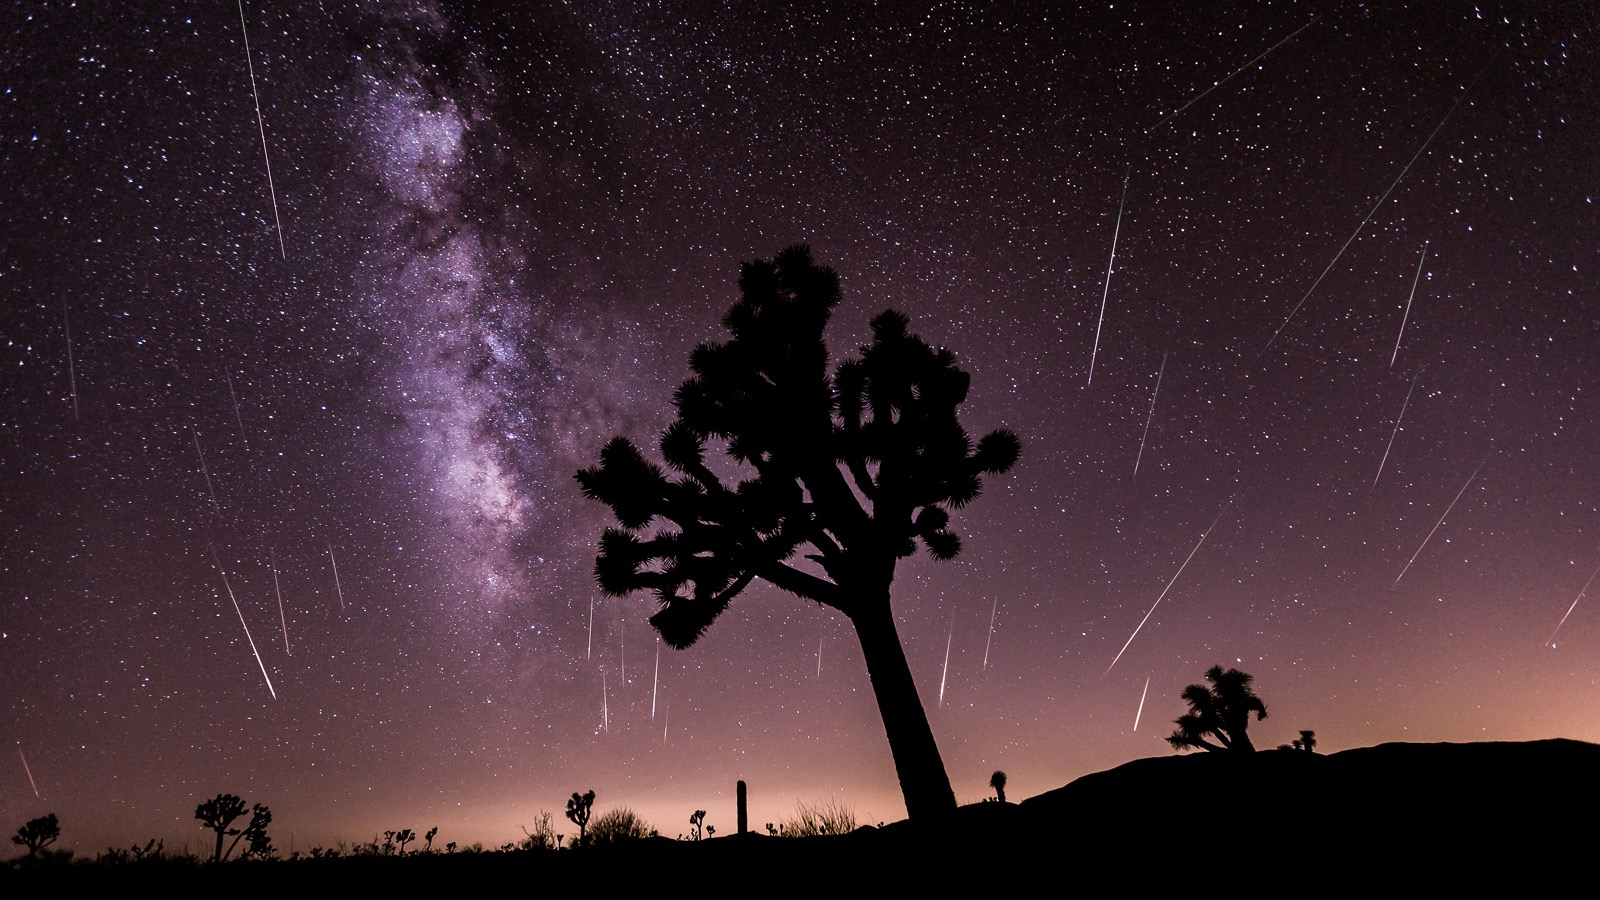 Three Days of Perseid Meteor Shower in 60 Seconds